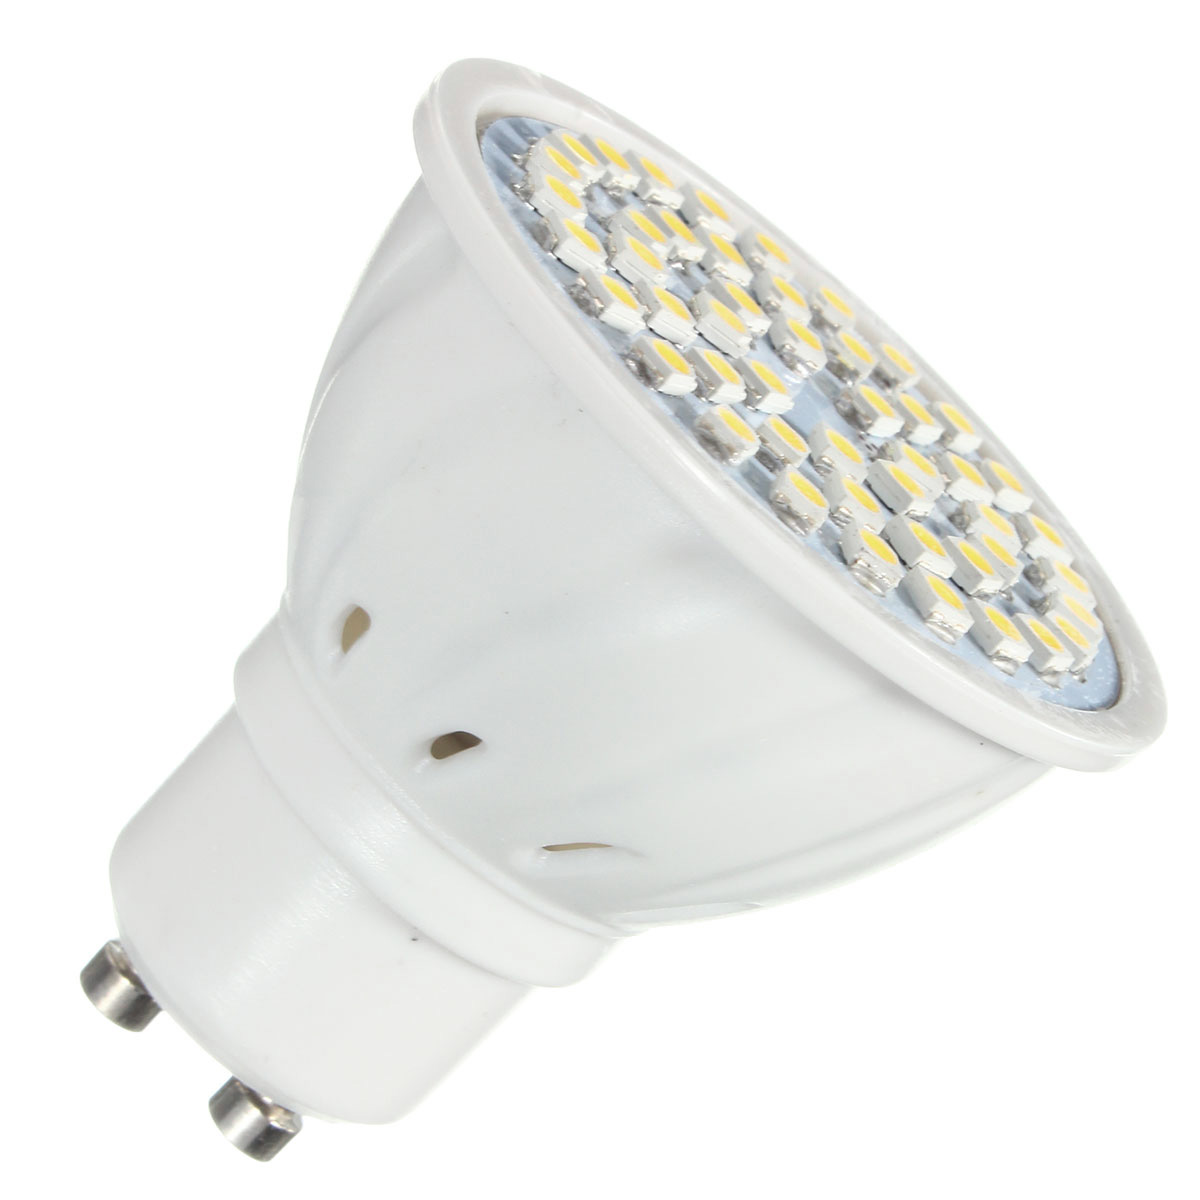 ZX E27 E14 GU10 MR16 LED 4W 48 SMD 3528 LED Pure White Warm White Spot Lightt Lamp Bulb AC110V AC220V